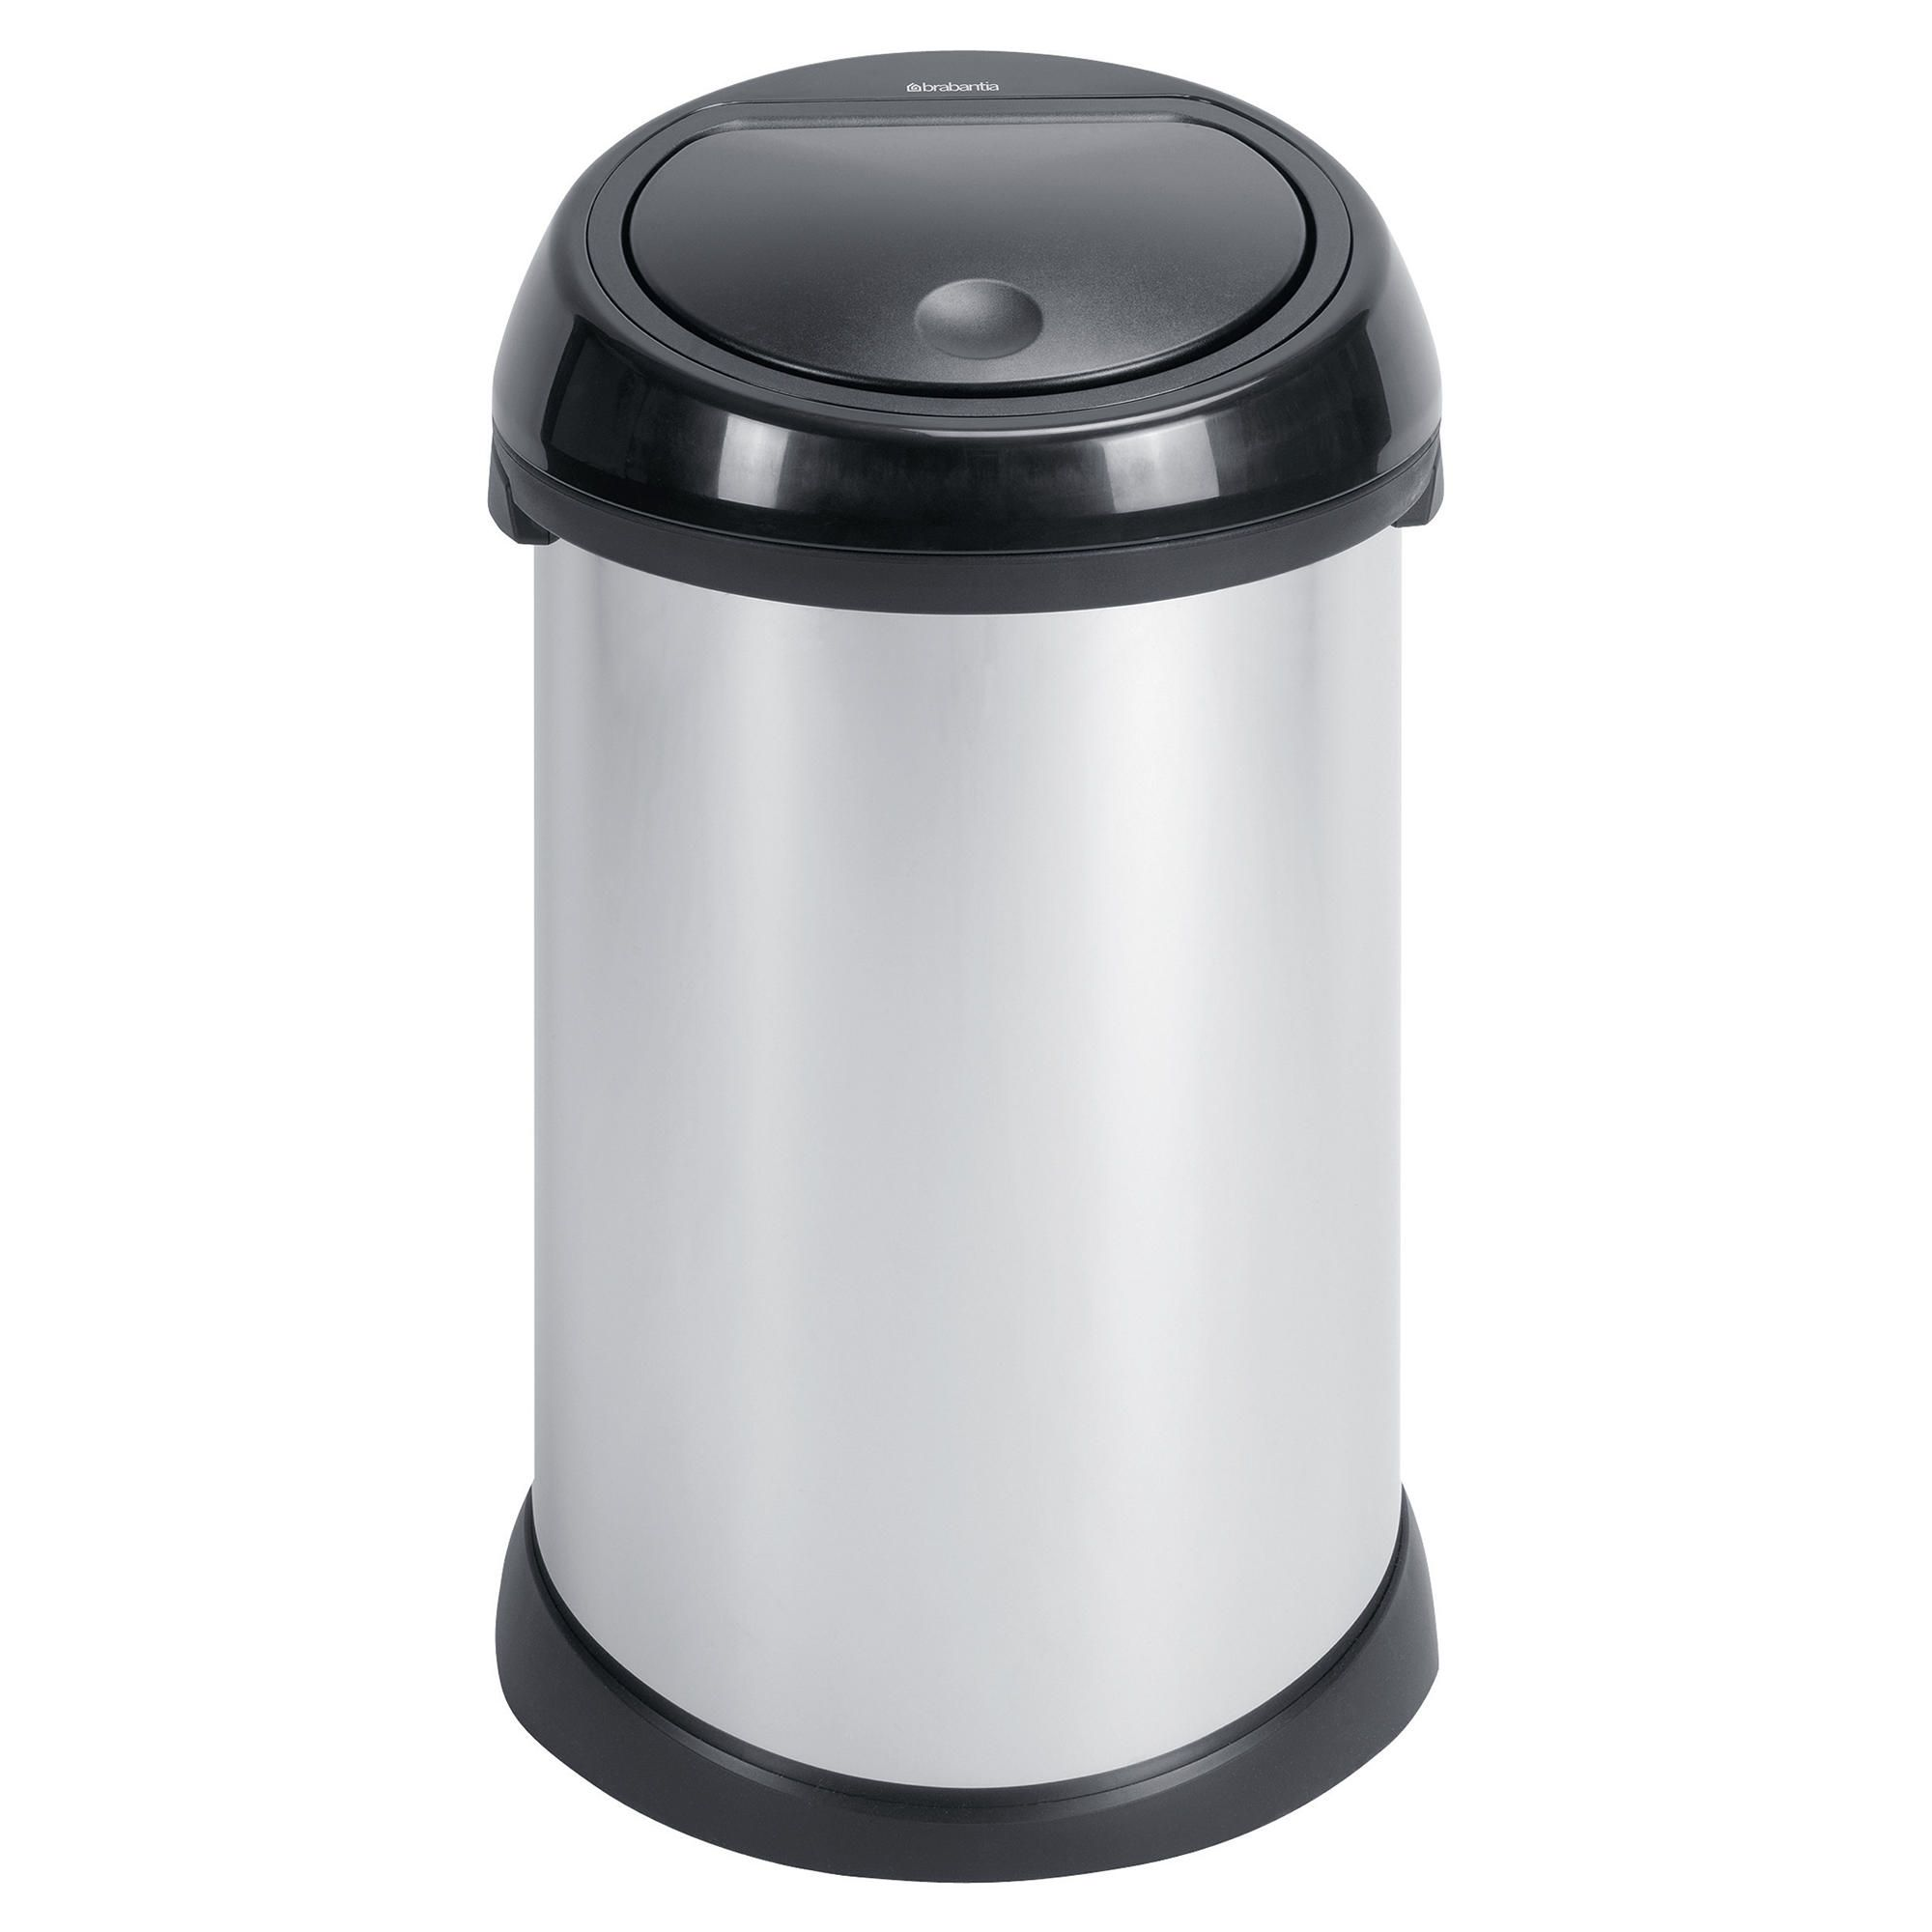 home and garden brabantia 50l brilliant steel touch bin with plastic lid special offers. Black Bedroom Furniture Sets. Home Design Ideas